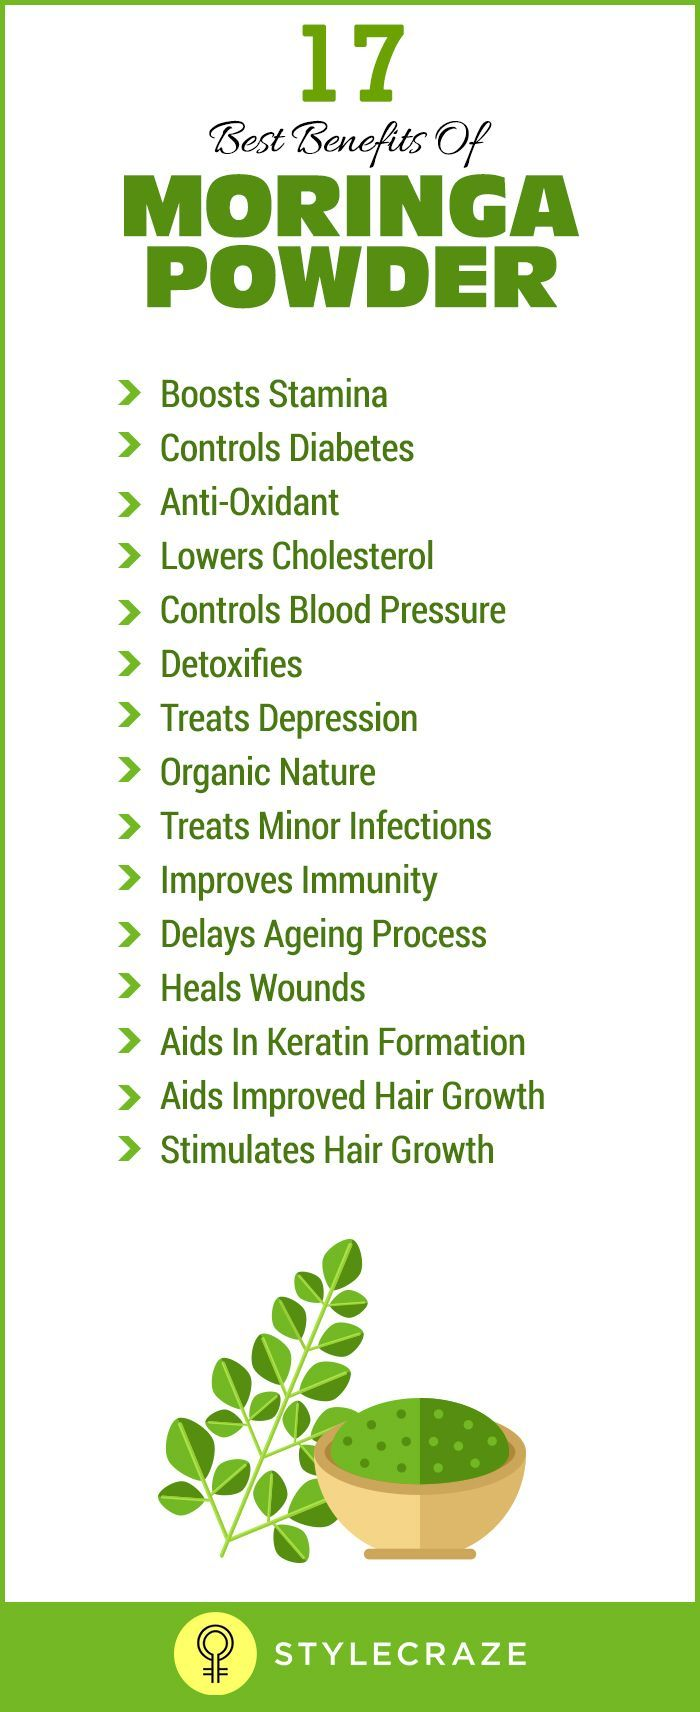 Moringa oleifera tree has been considered as one of the most nutritious plants ever discovered with most of its benefits concentrated in its small green leaves. As is evident from its name, moringa powder is made from the freshly harvested leaves of the moringa oleifera tree. Fresh moringa leaf powder is deep green in color and has a rich nutty smell.